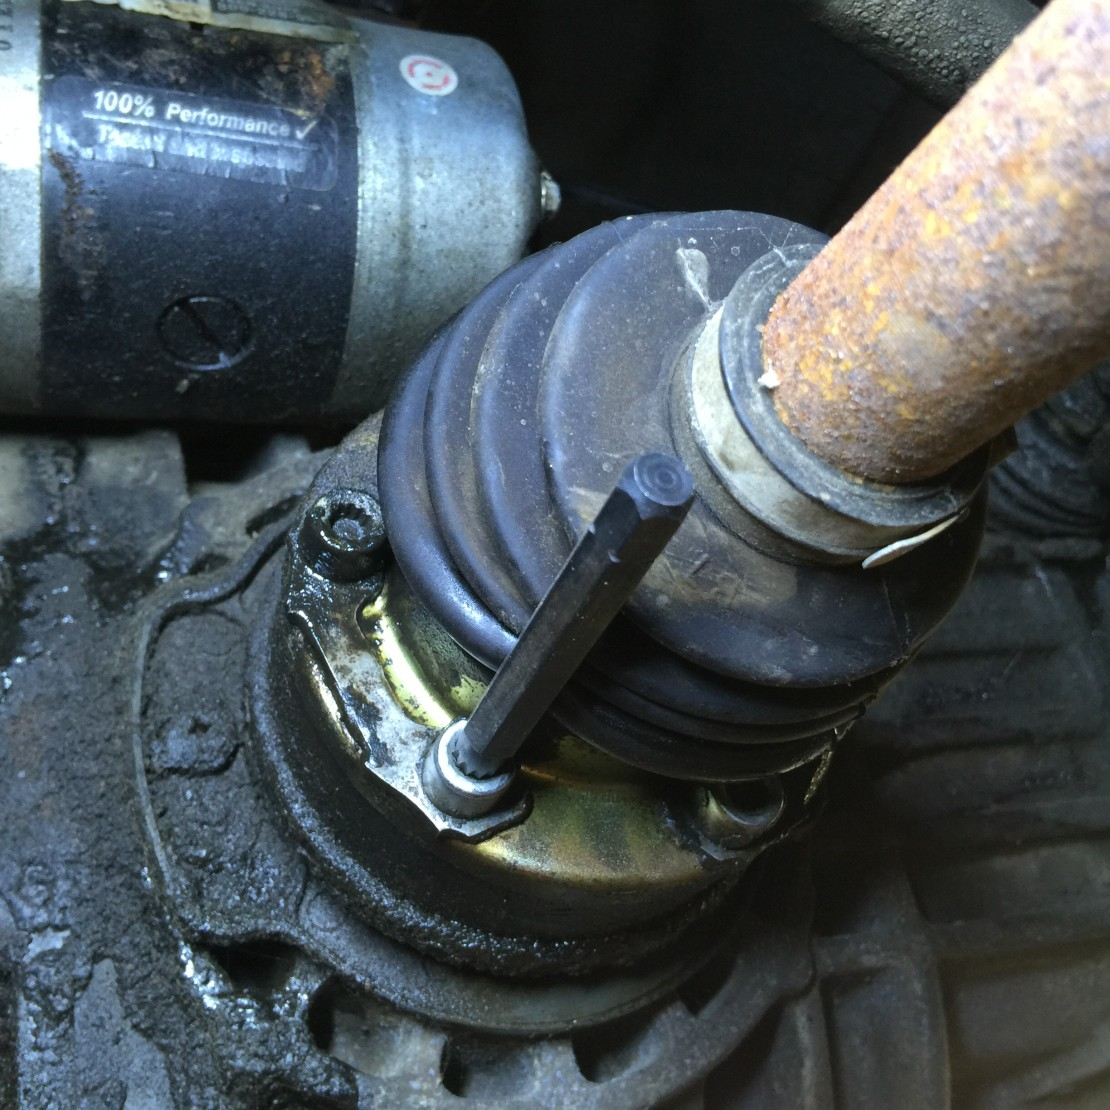 wbx-and-transaxle-removal-3.jpg